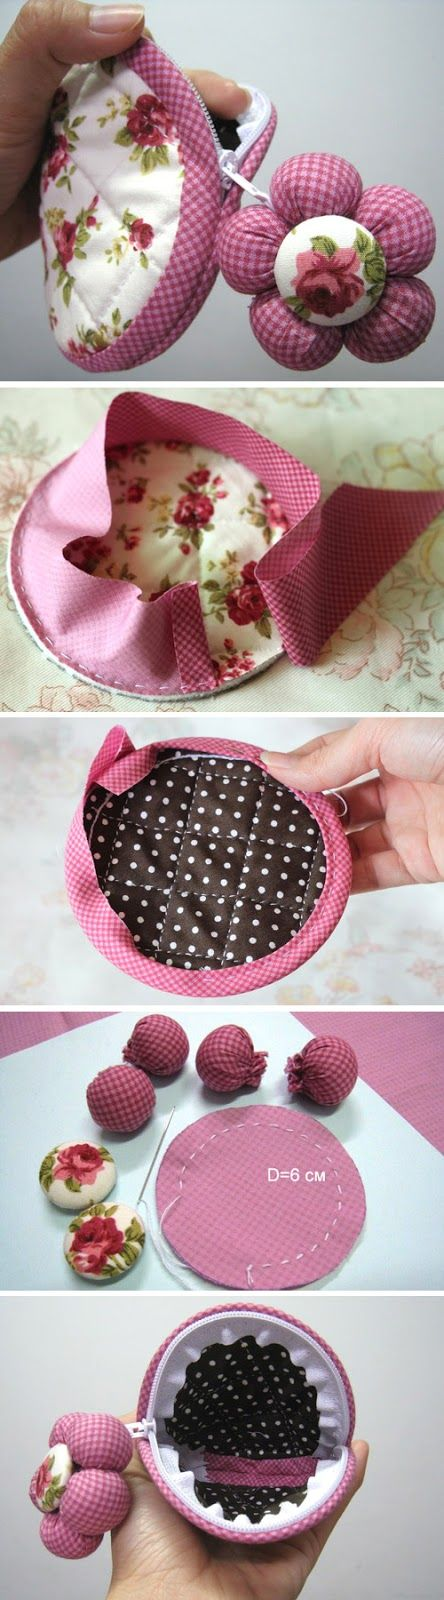 Circle Zip Pouch. Step by step photo DIY tutorial.  http://www.handmadiya.com/2015/11/circle-coin-case-tutorial.html